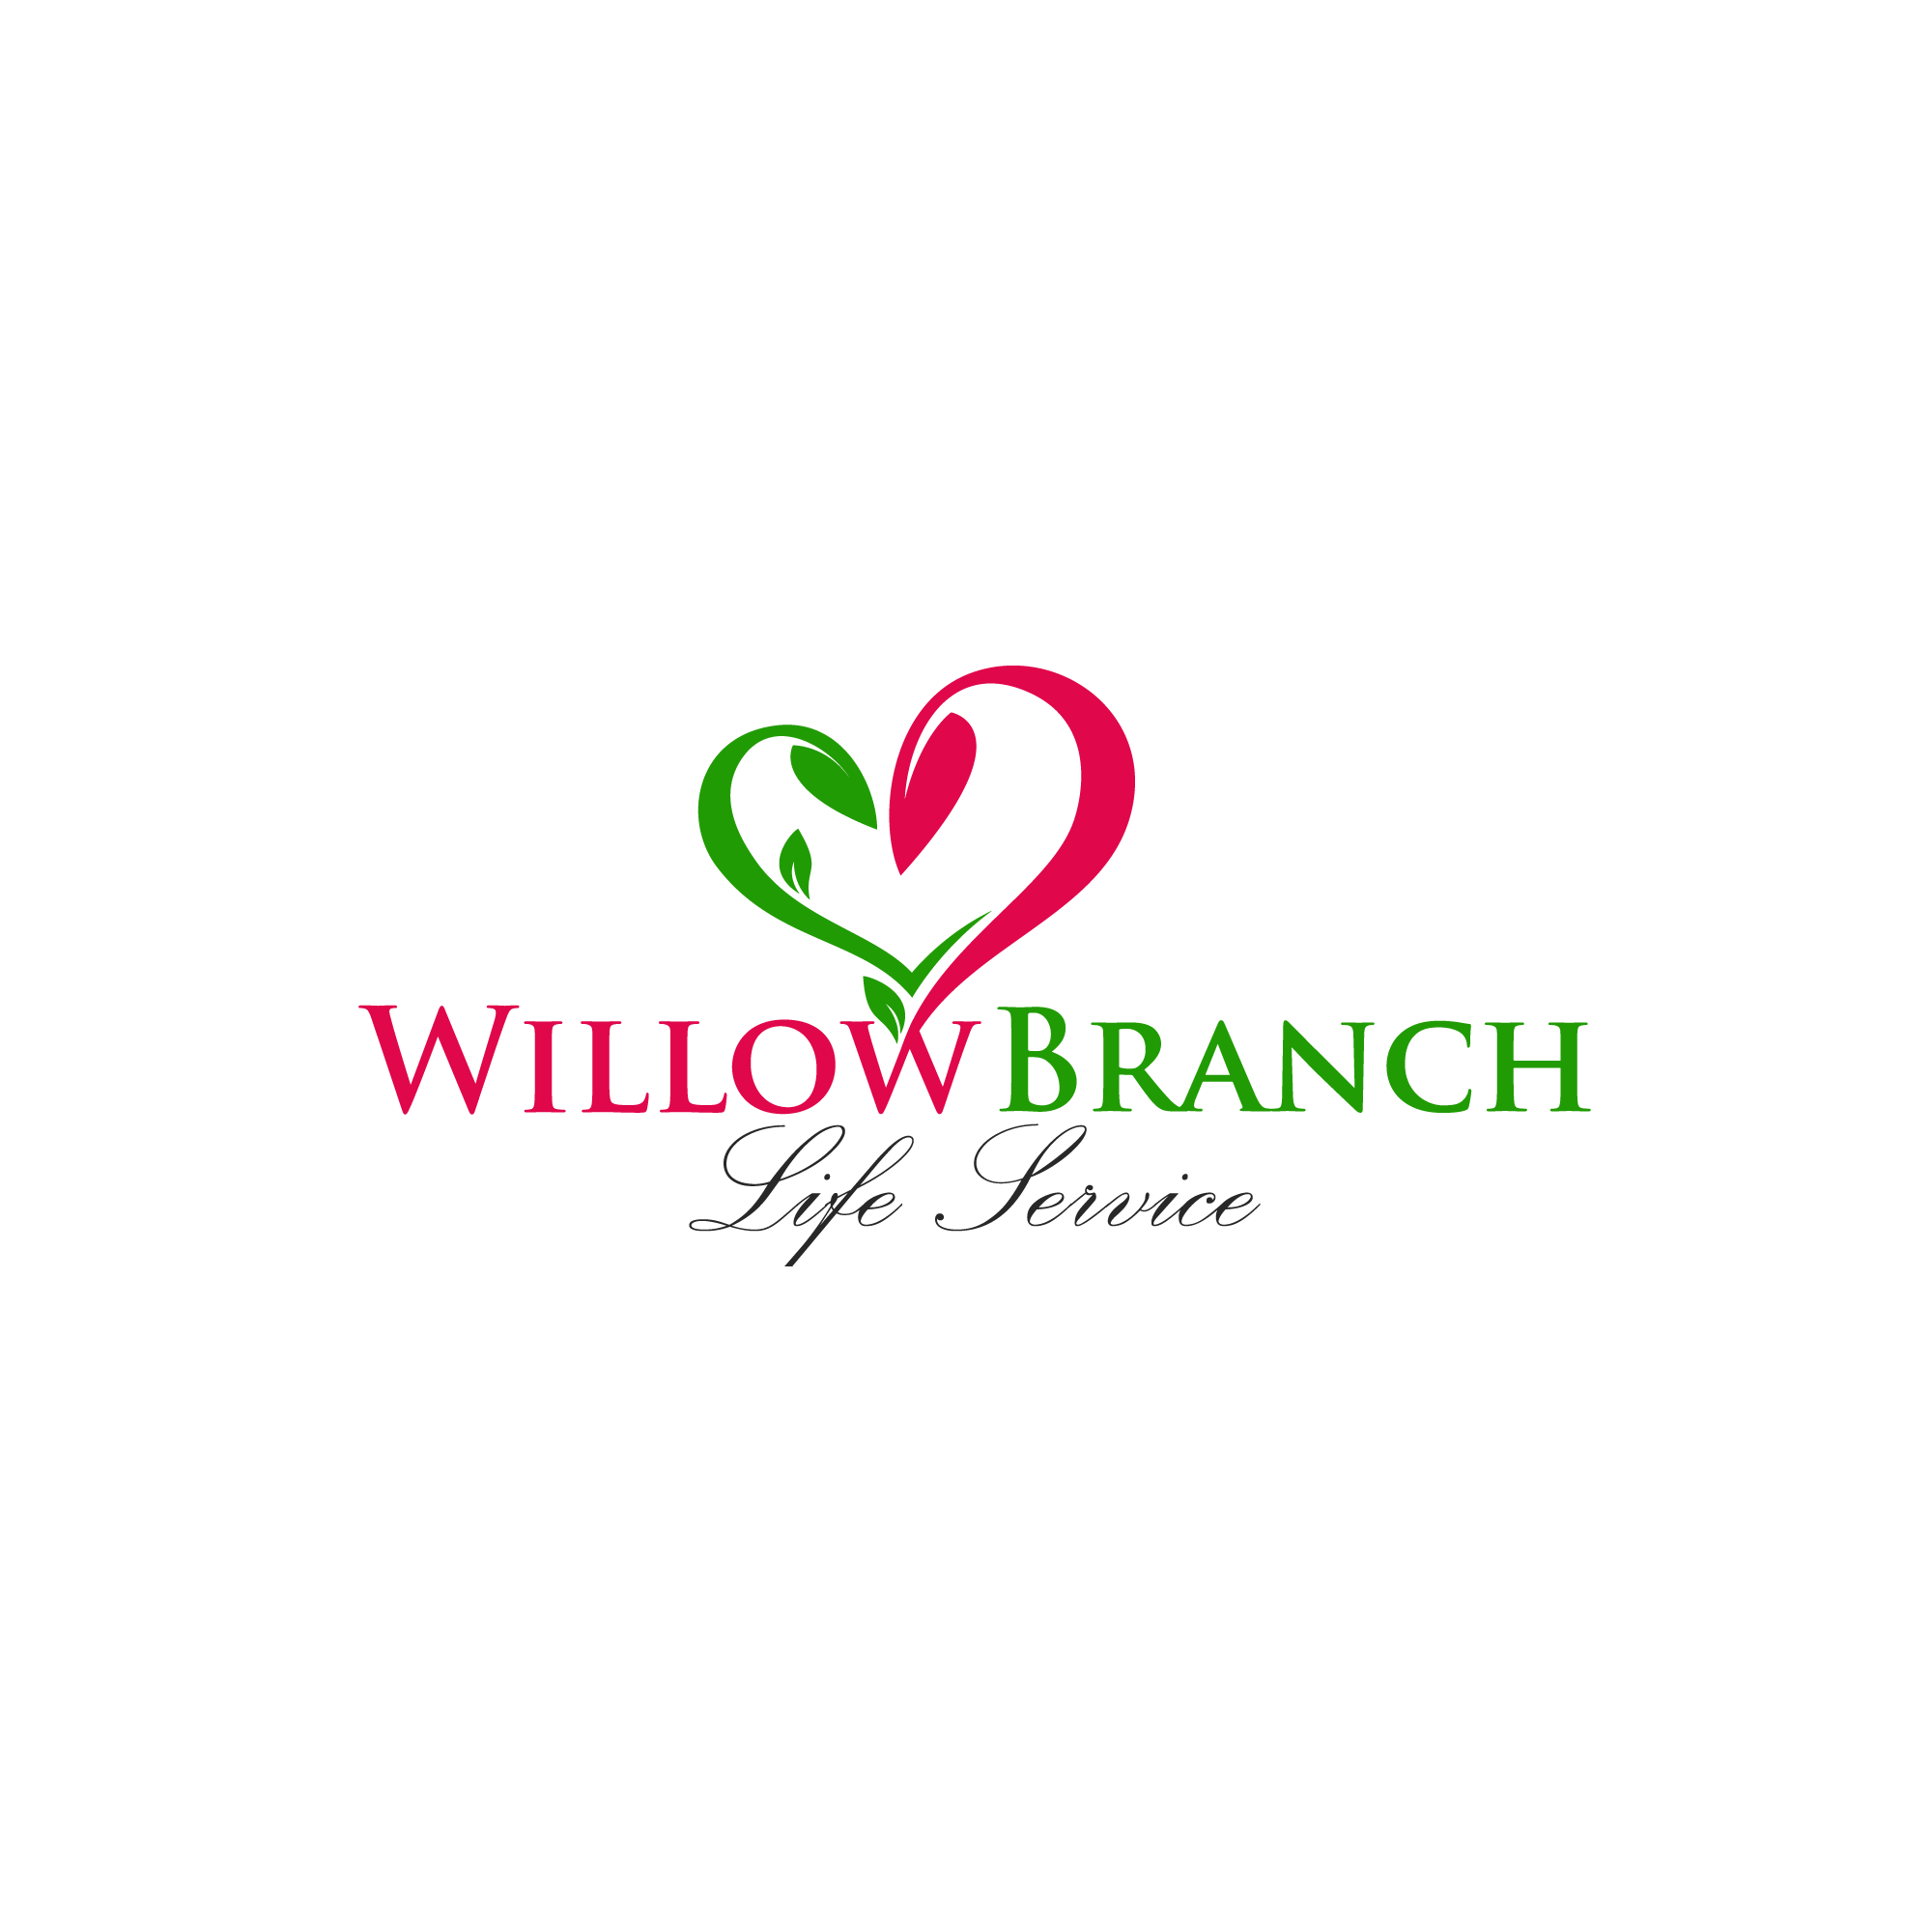 Logo Design by Runz - Entry No. 226 in the Logo Design Contest Artistic Logo Design for Willow Branch Life Service.